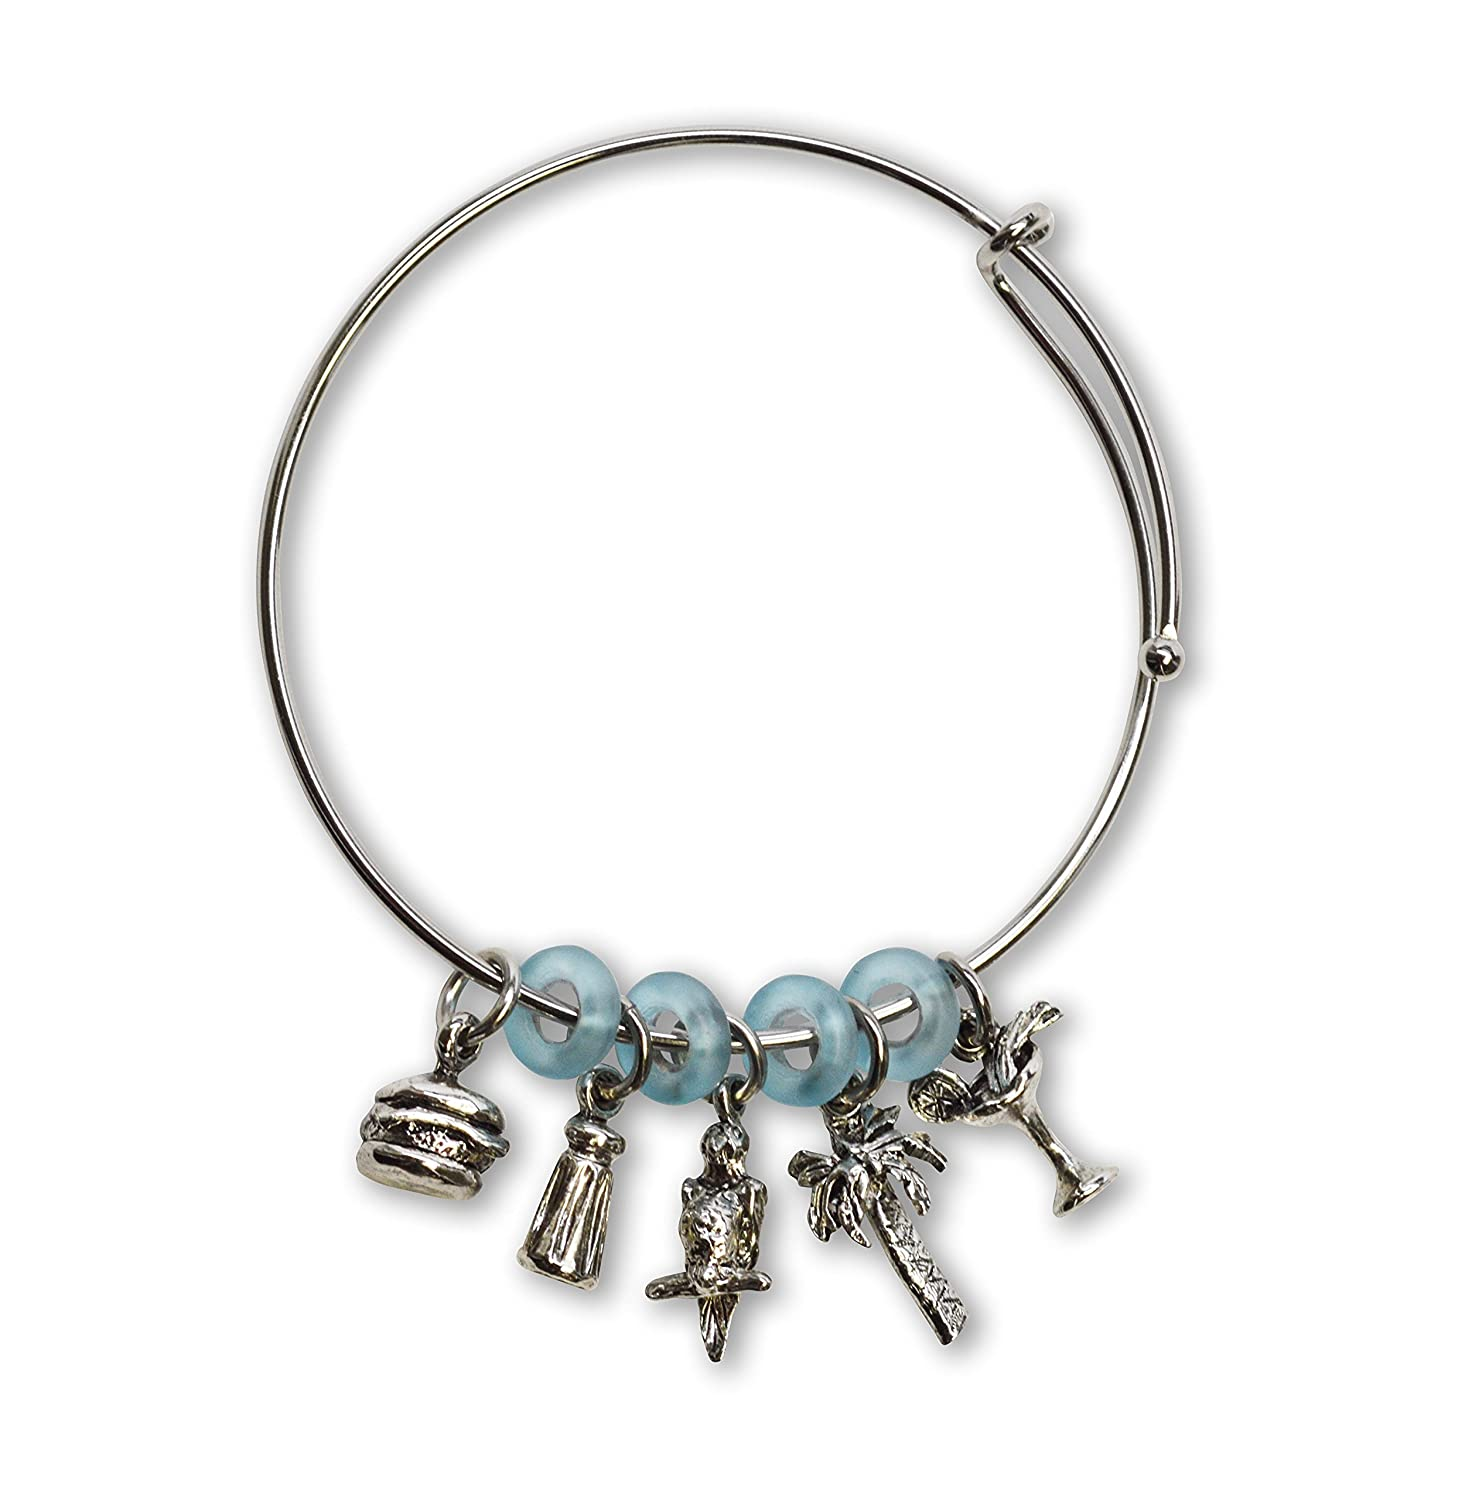 Paradise Parrot Head Wire Bracelet with Five Charms and Blue Beads for cheap